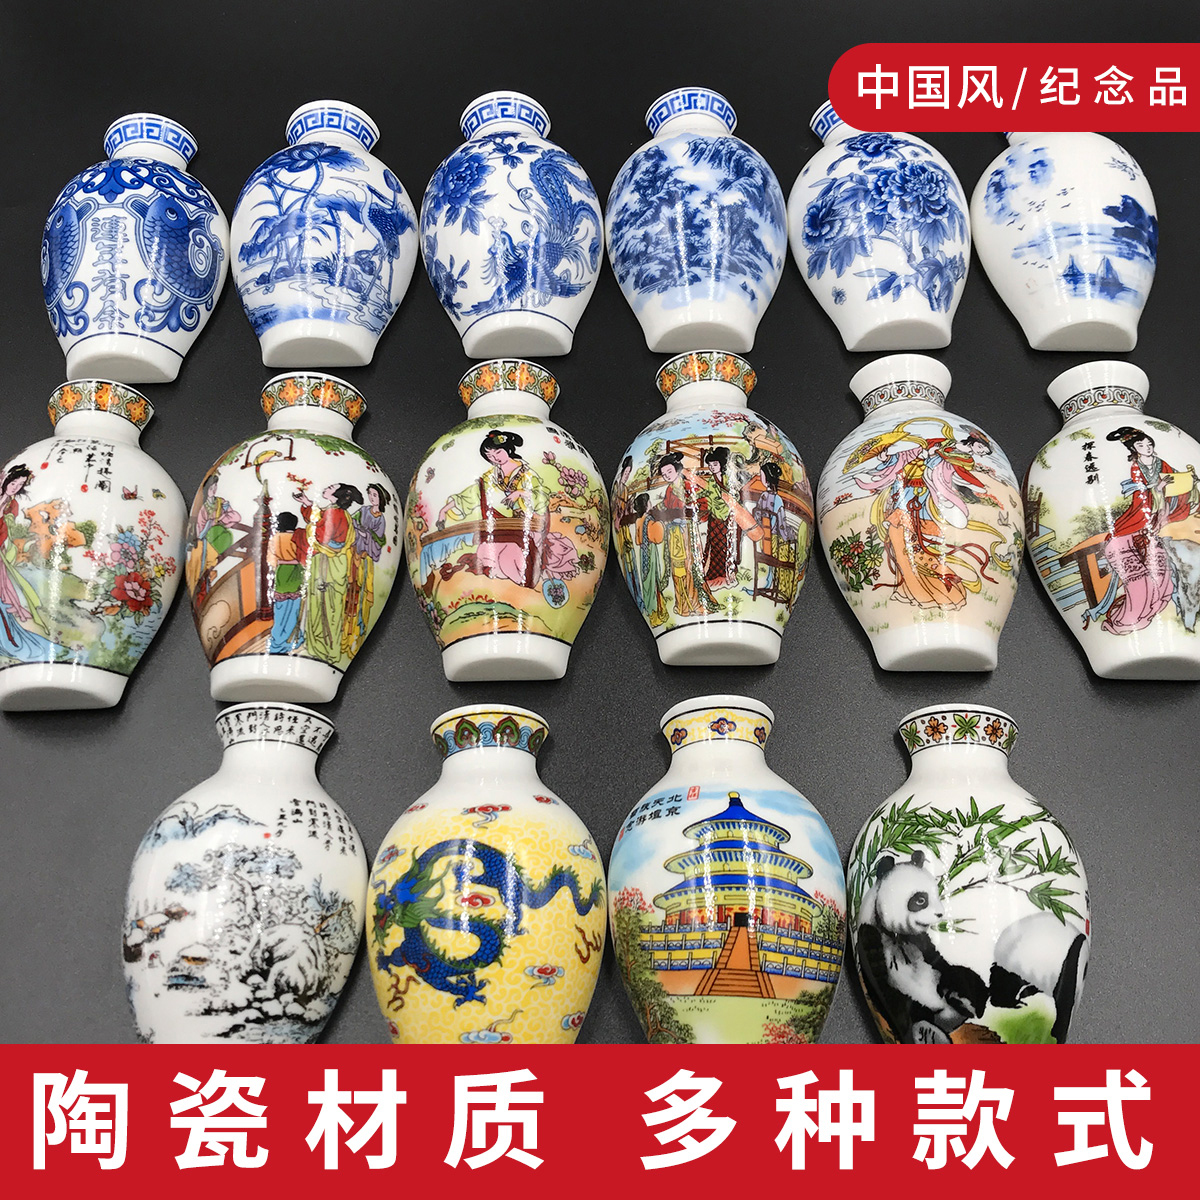 Chinese Style Ceramic Blue And White Porcelain Vases Refrigerator Stickers Souvenirs Home Accessories Business Send Foreigners